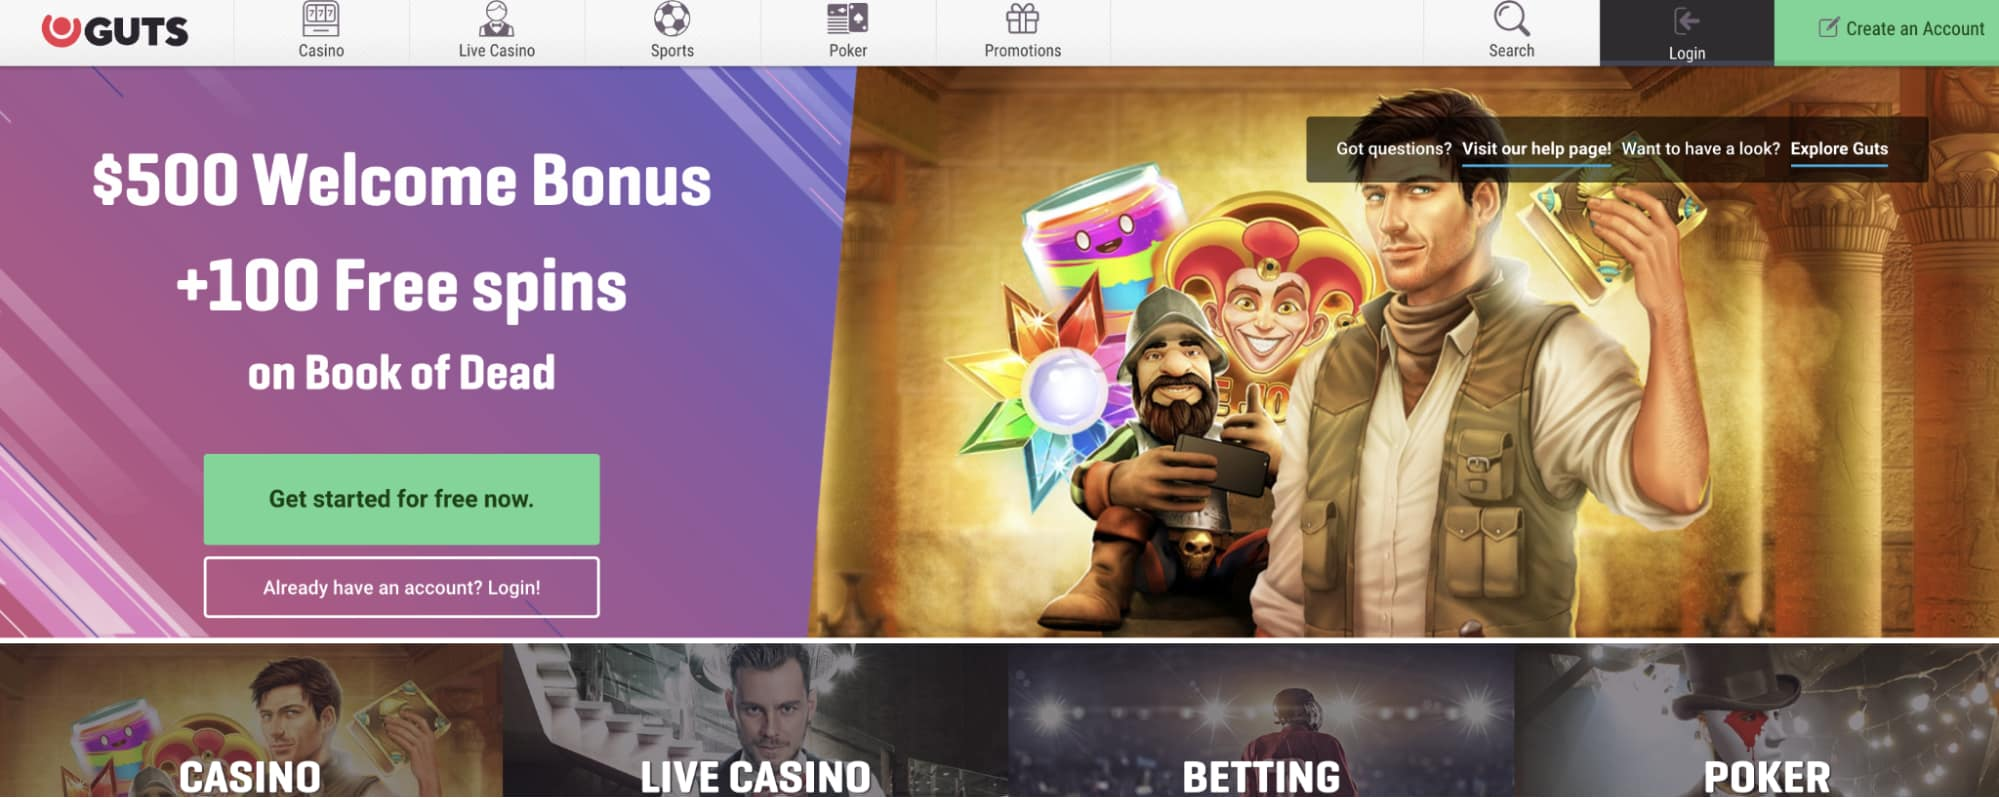 How to Make Money at Guts Casino